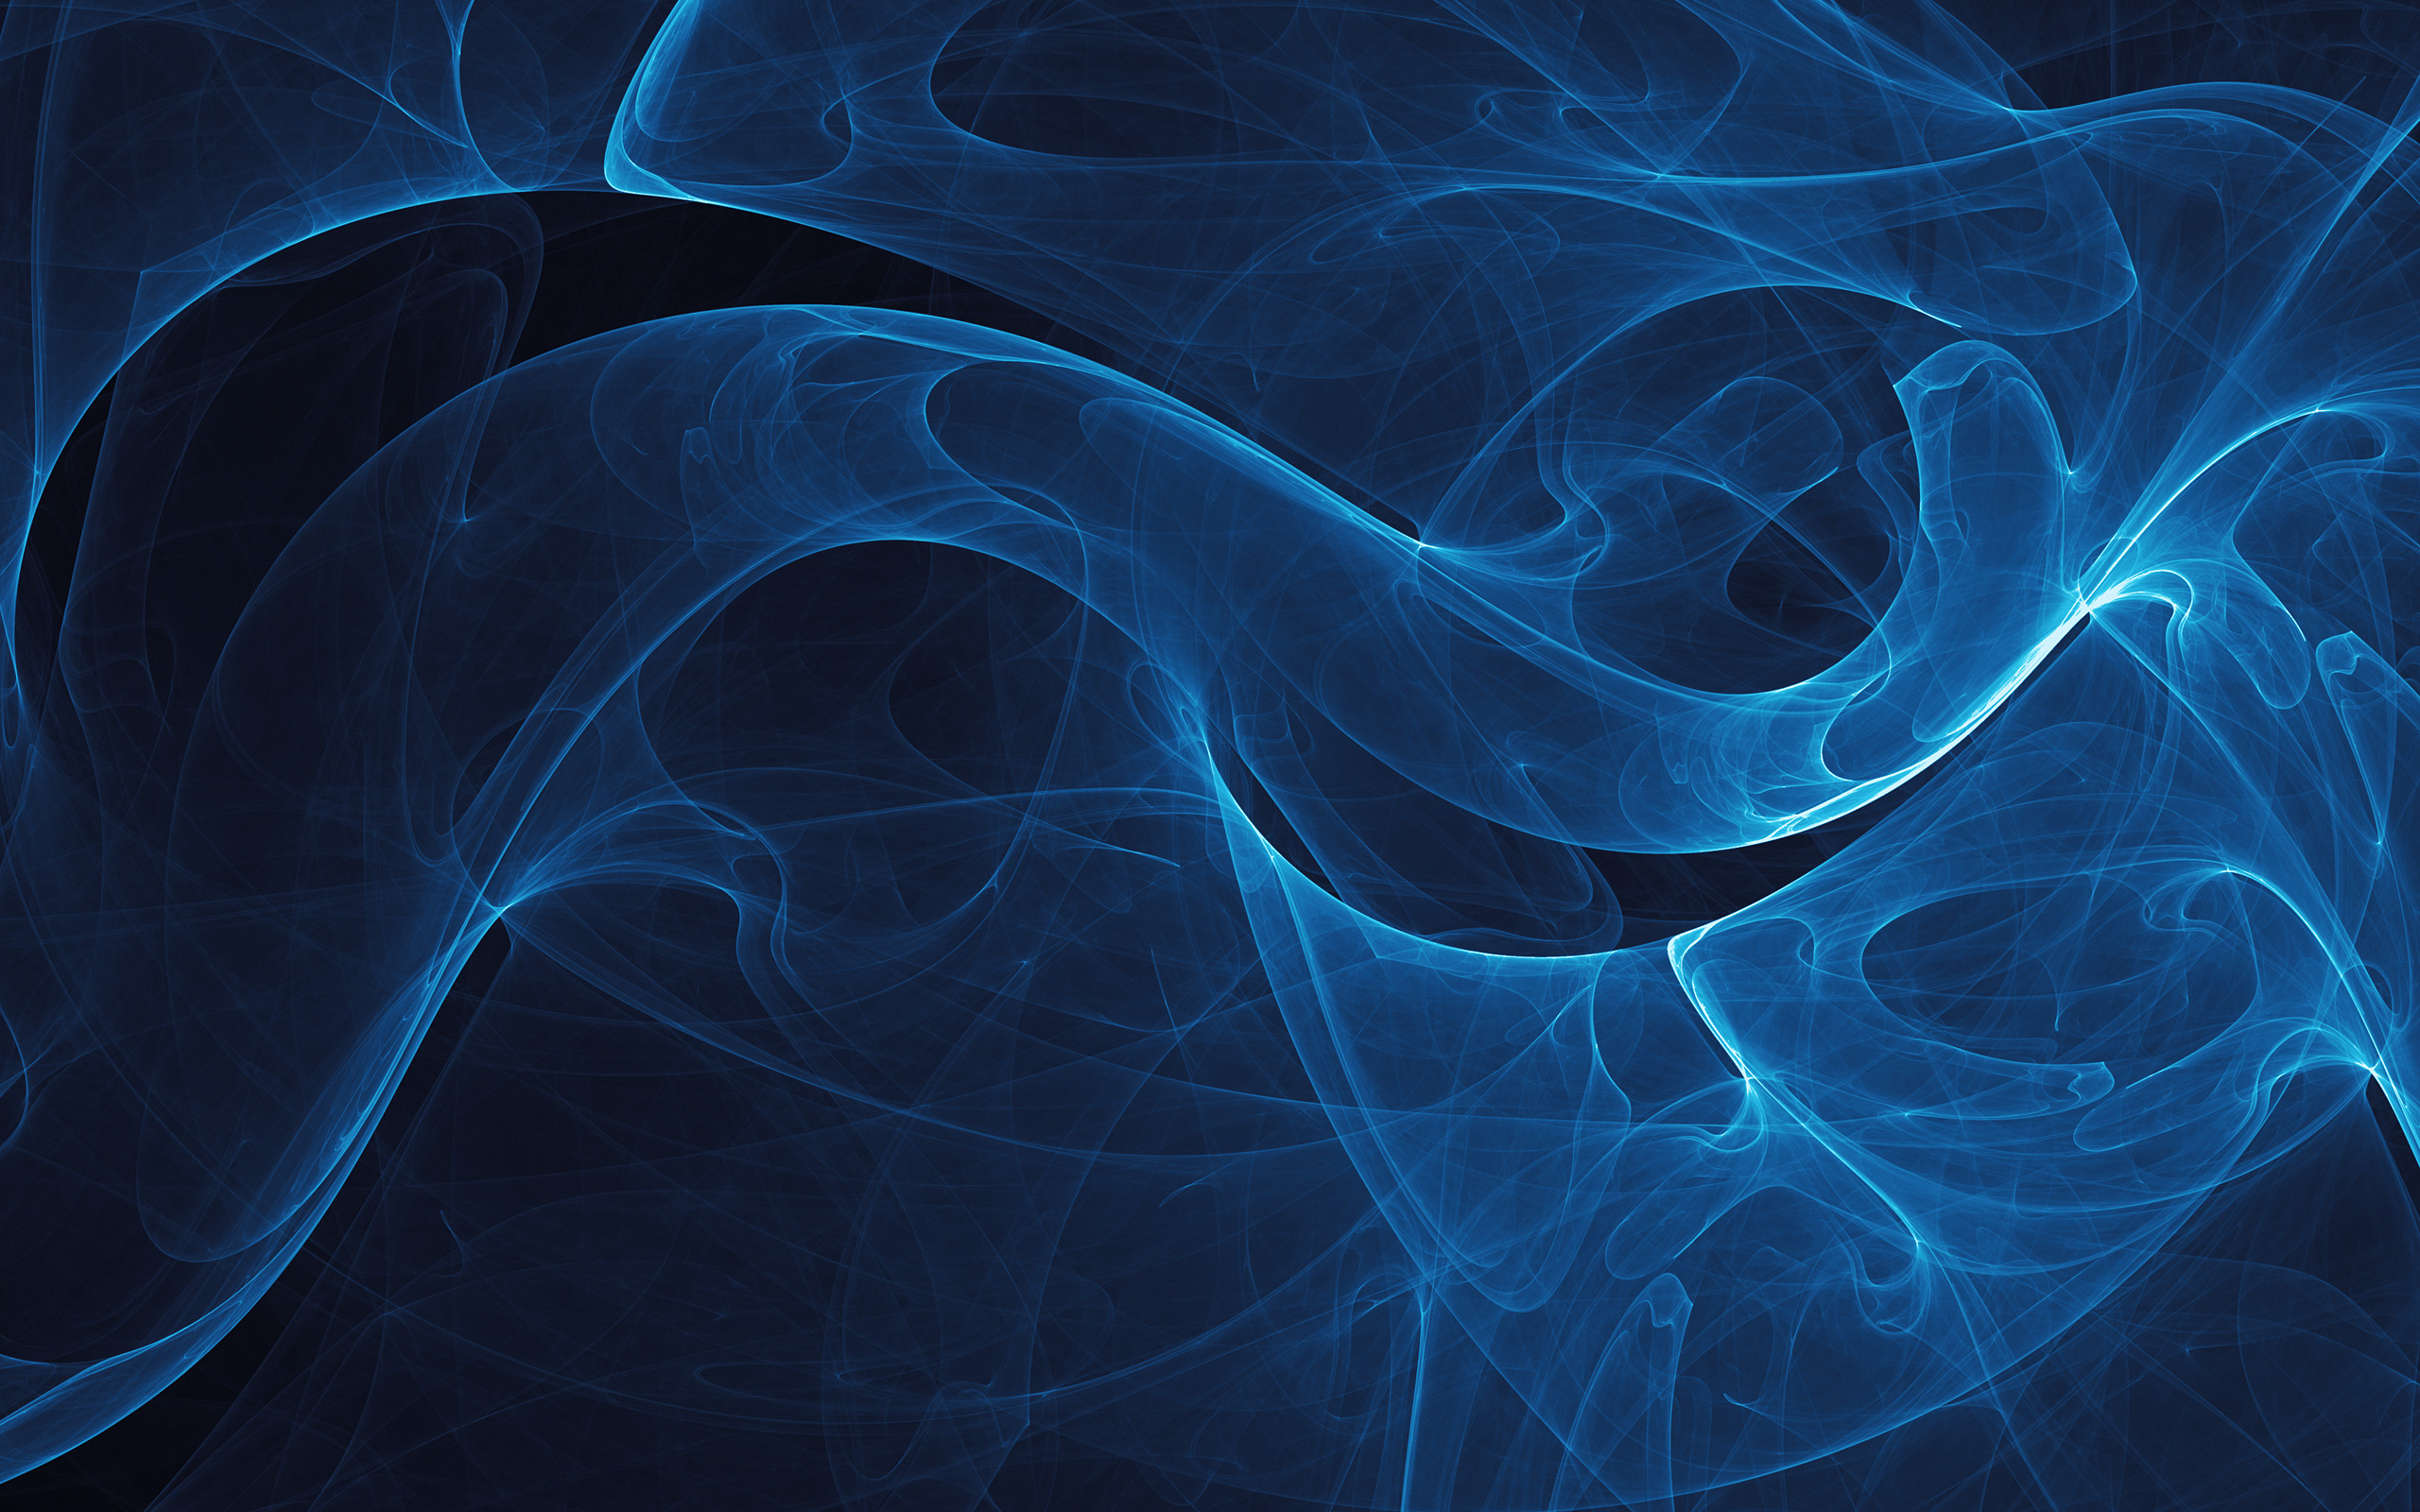 2560x1600 Explore Blue Wallpapers, Hd Wallpaper, and more!